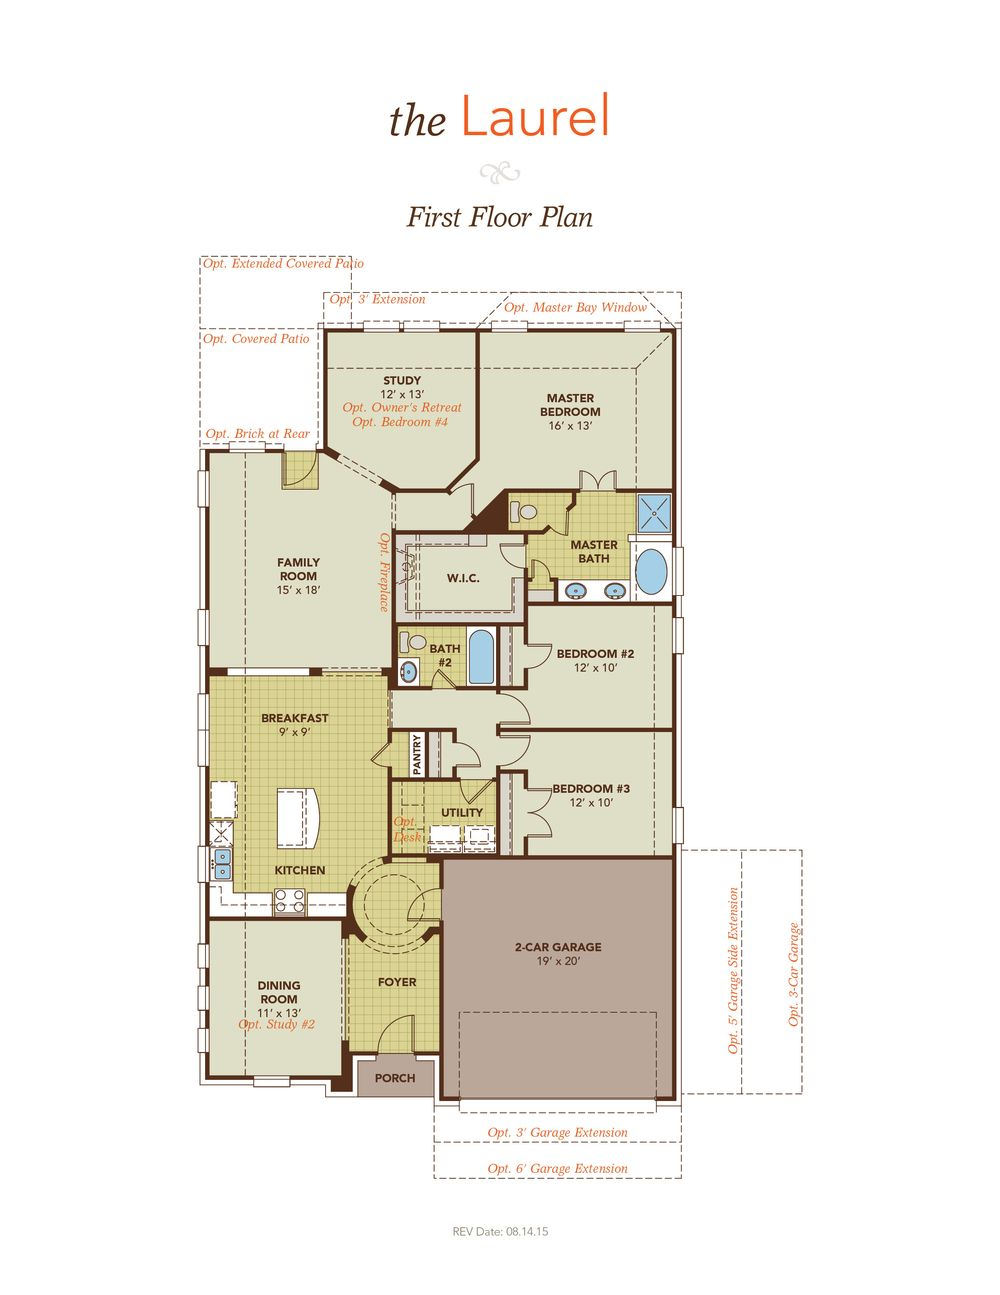 Laurel model at 101 queensgate drive The laurels floor plan